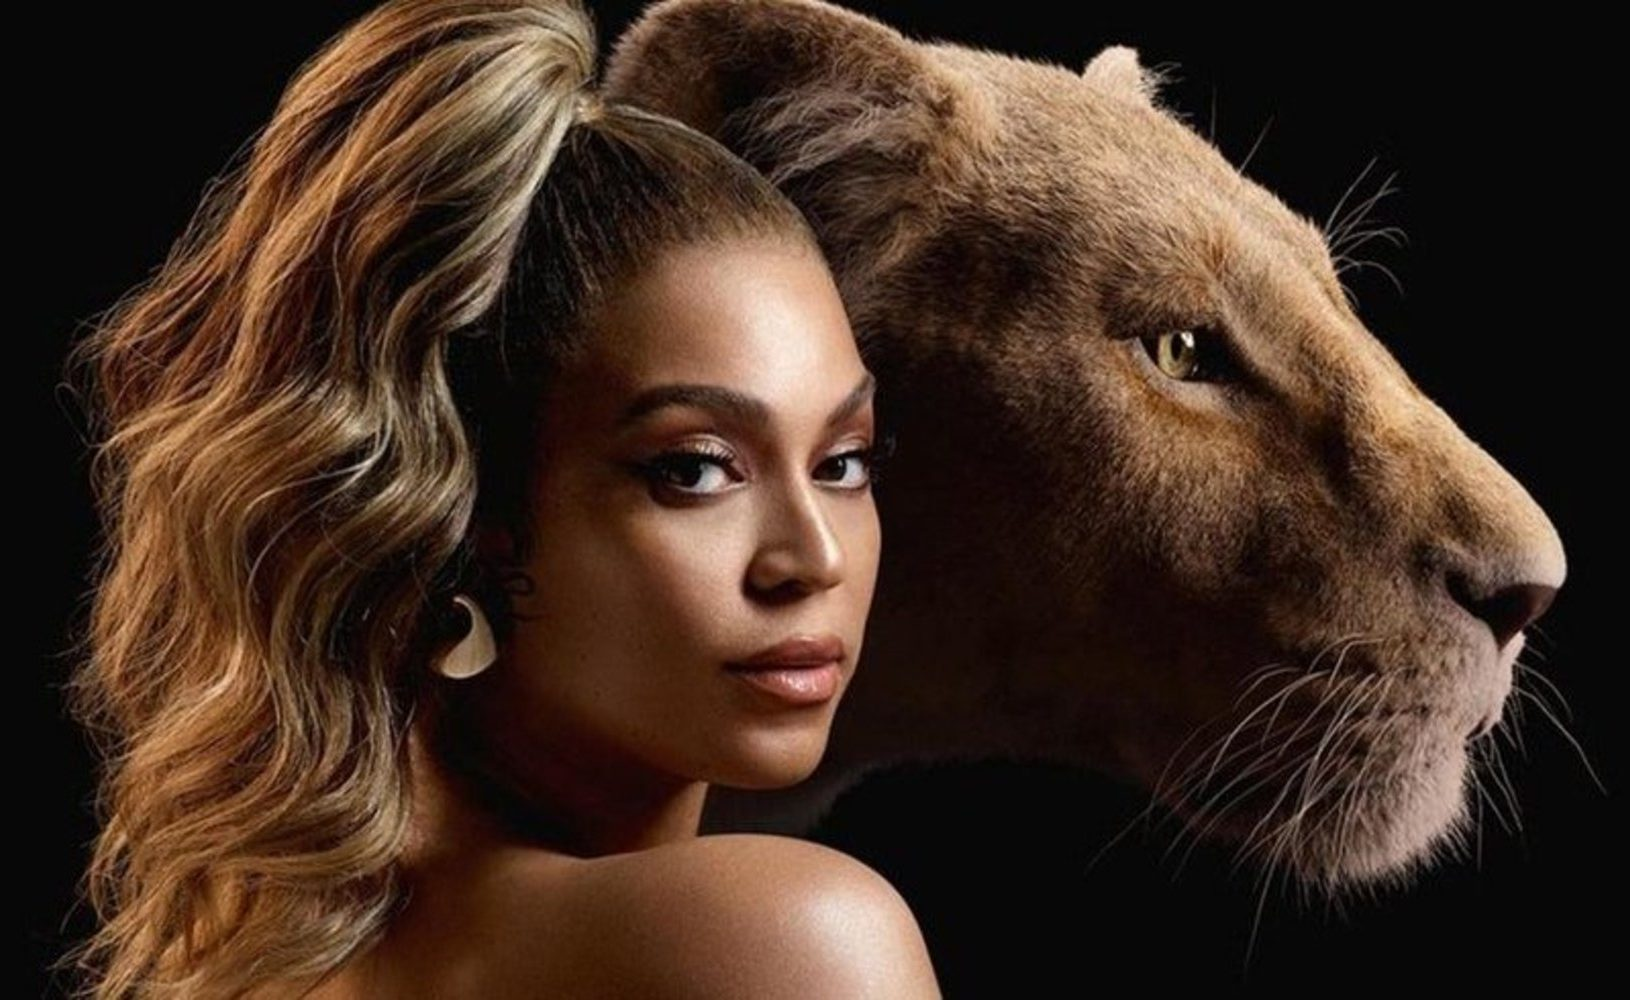 beyonce-the-lion-king-the-gift-the-album-african-afrobeats-latest-best-top-july-2019-and-tiwa-savage-wizkid-yemi-alade-burna-boy-style-rave-okay-africa--itunes-billboard